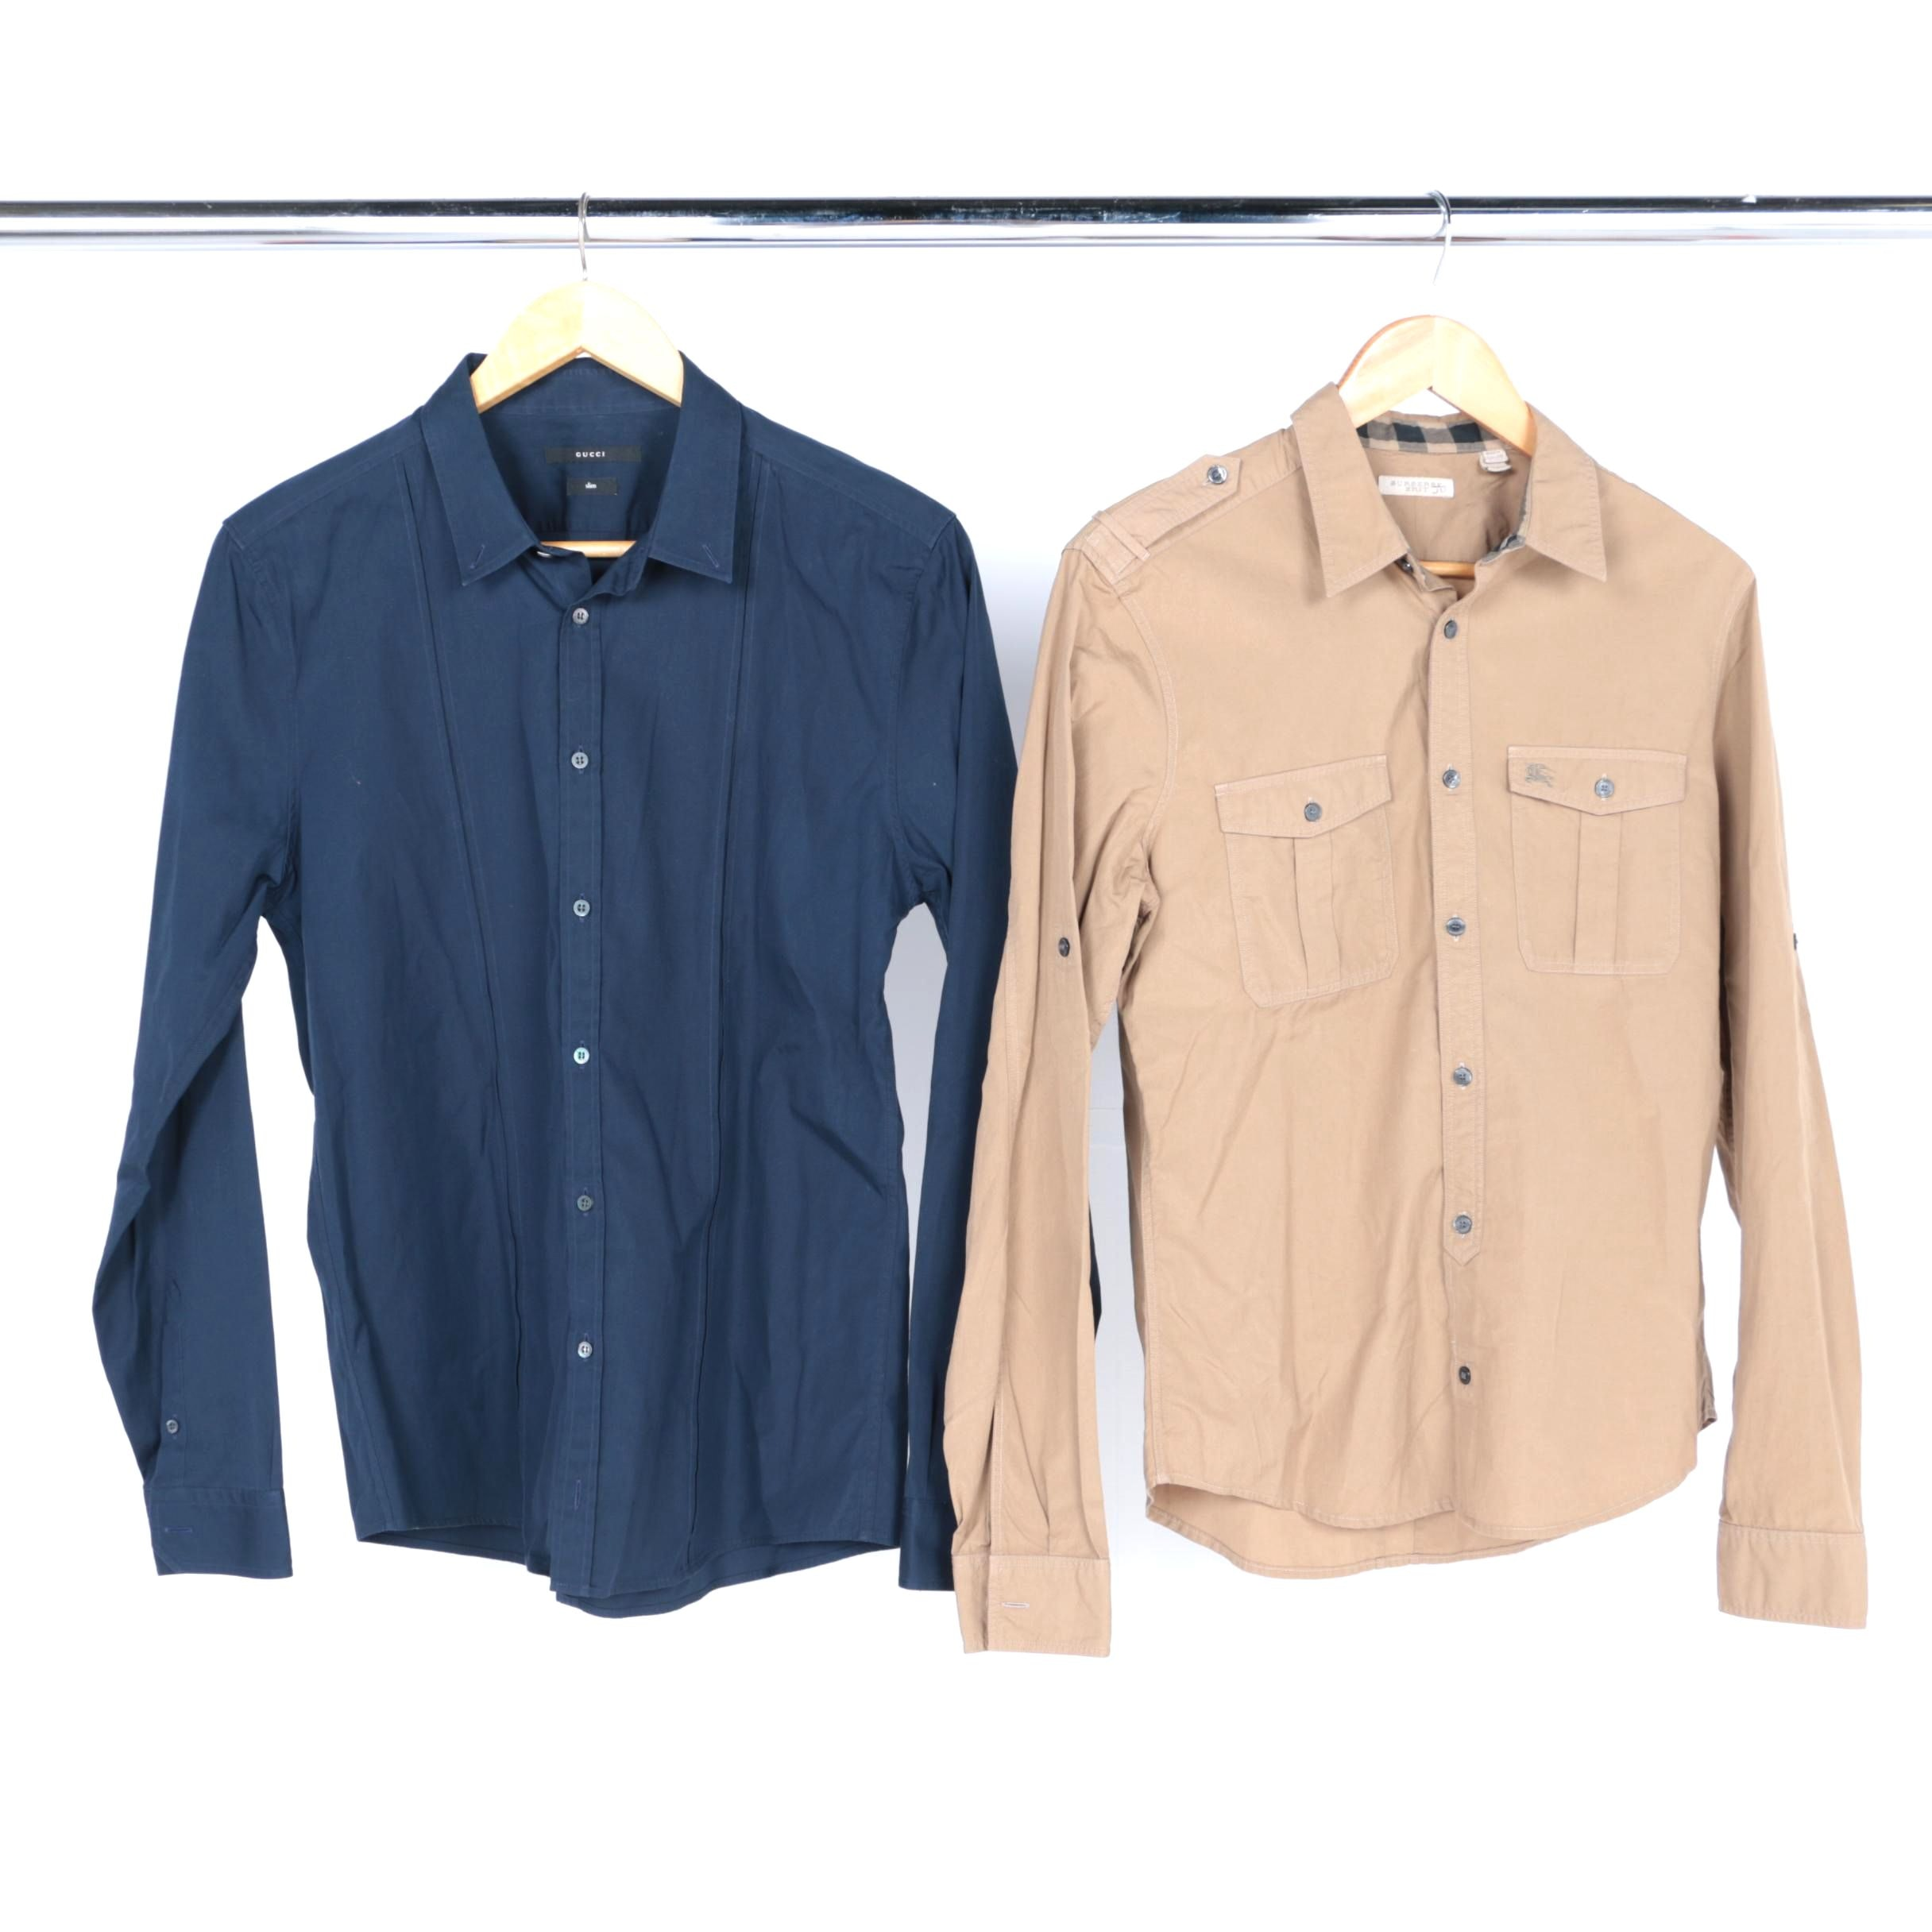 Gucci and Burberry Button-Ups and Button Down Shirts